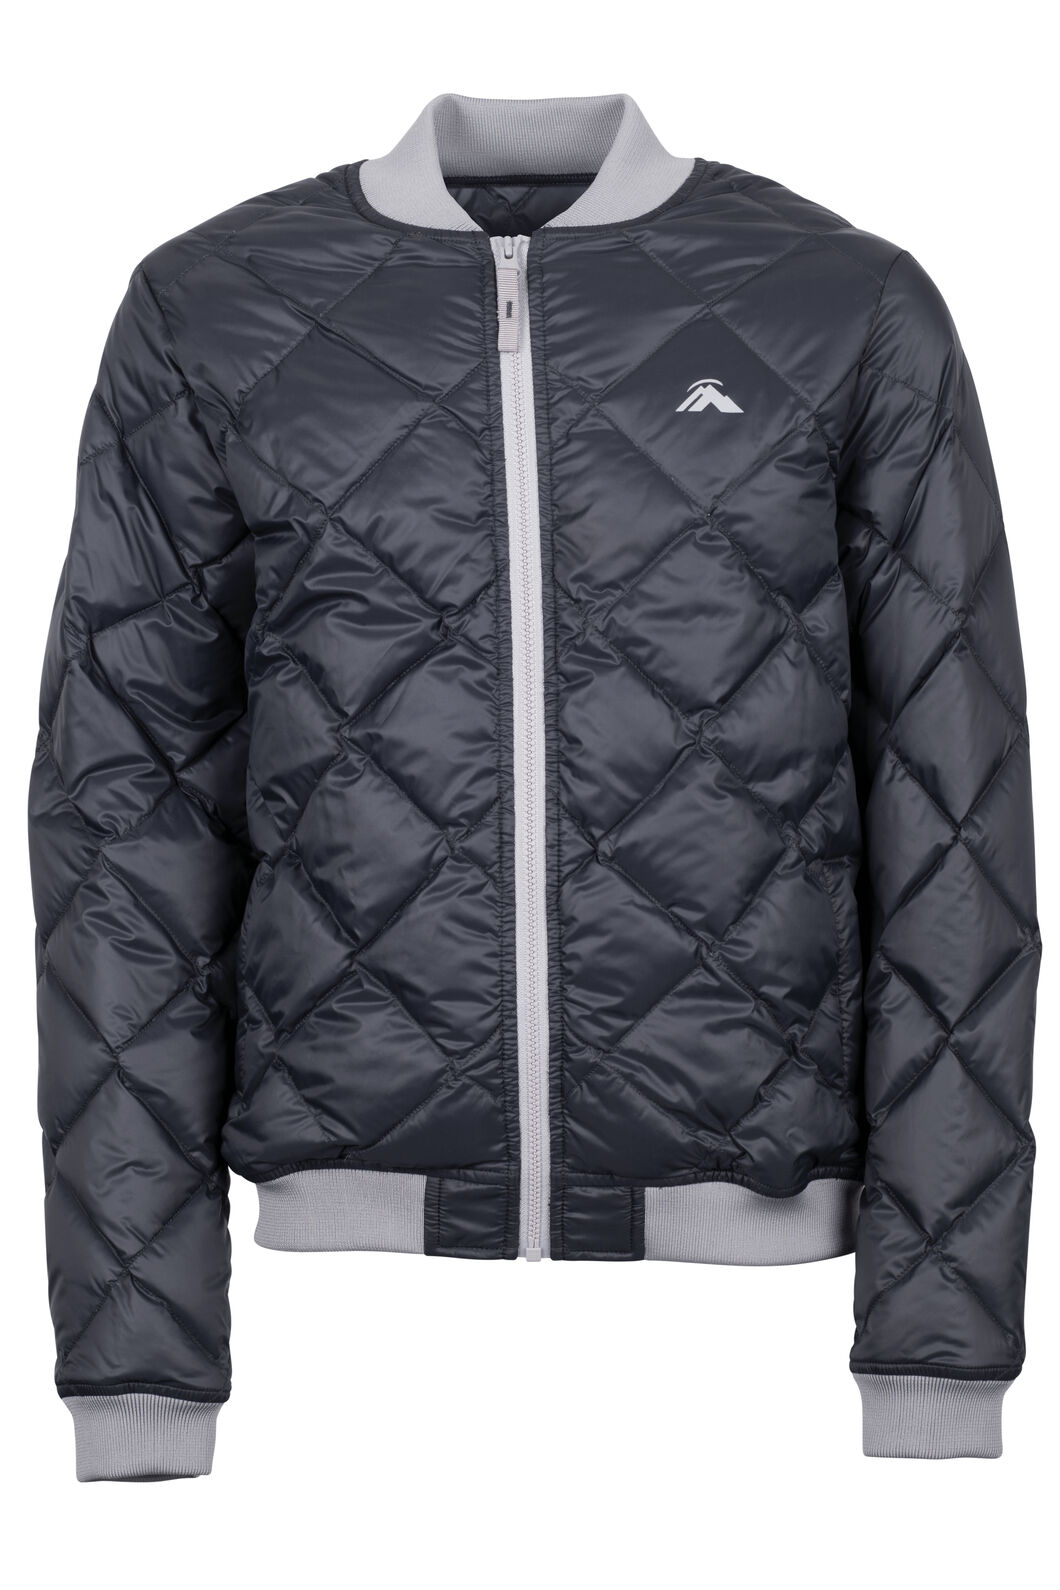 cbcc0e9e4779 Macpac Uber Light Bomber Down Jacket - Kids